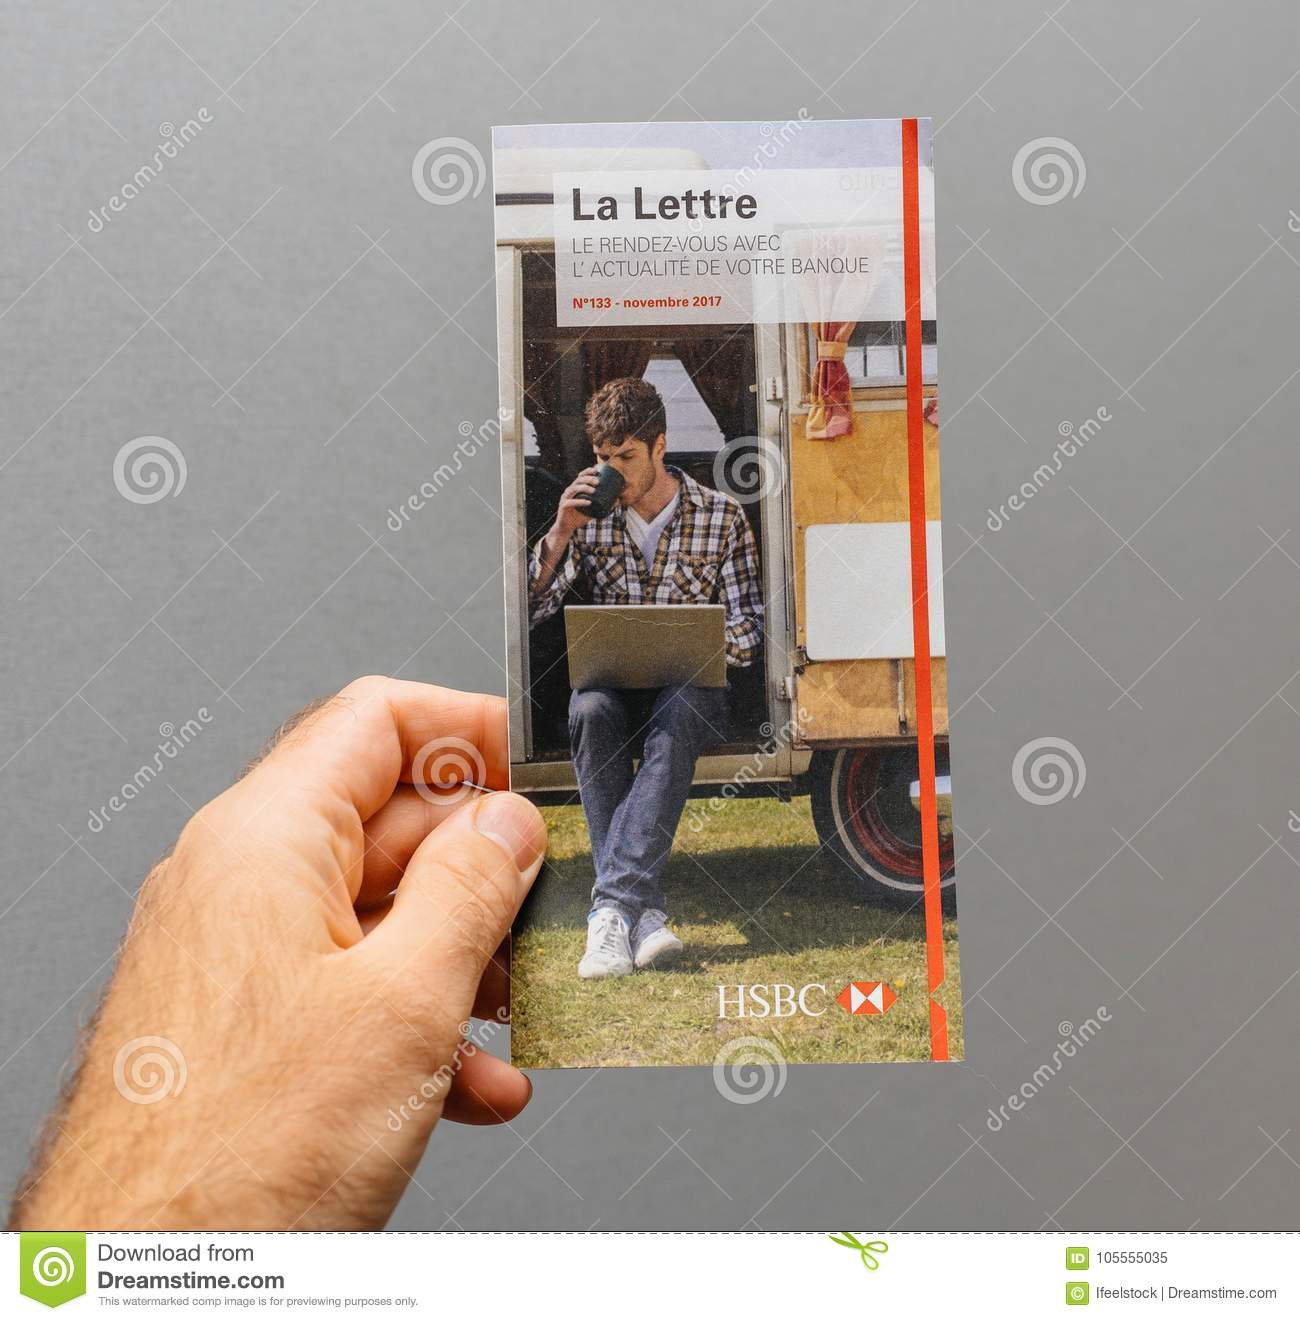 Man Hand Holding Against Gray Background The Official HSBC